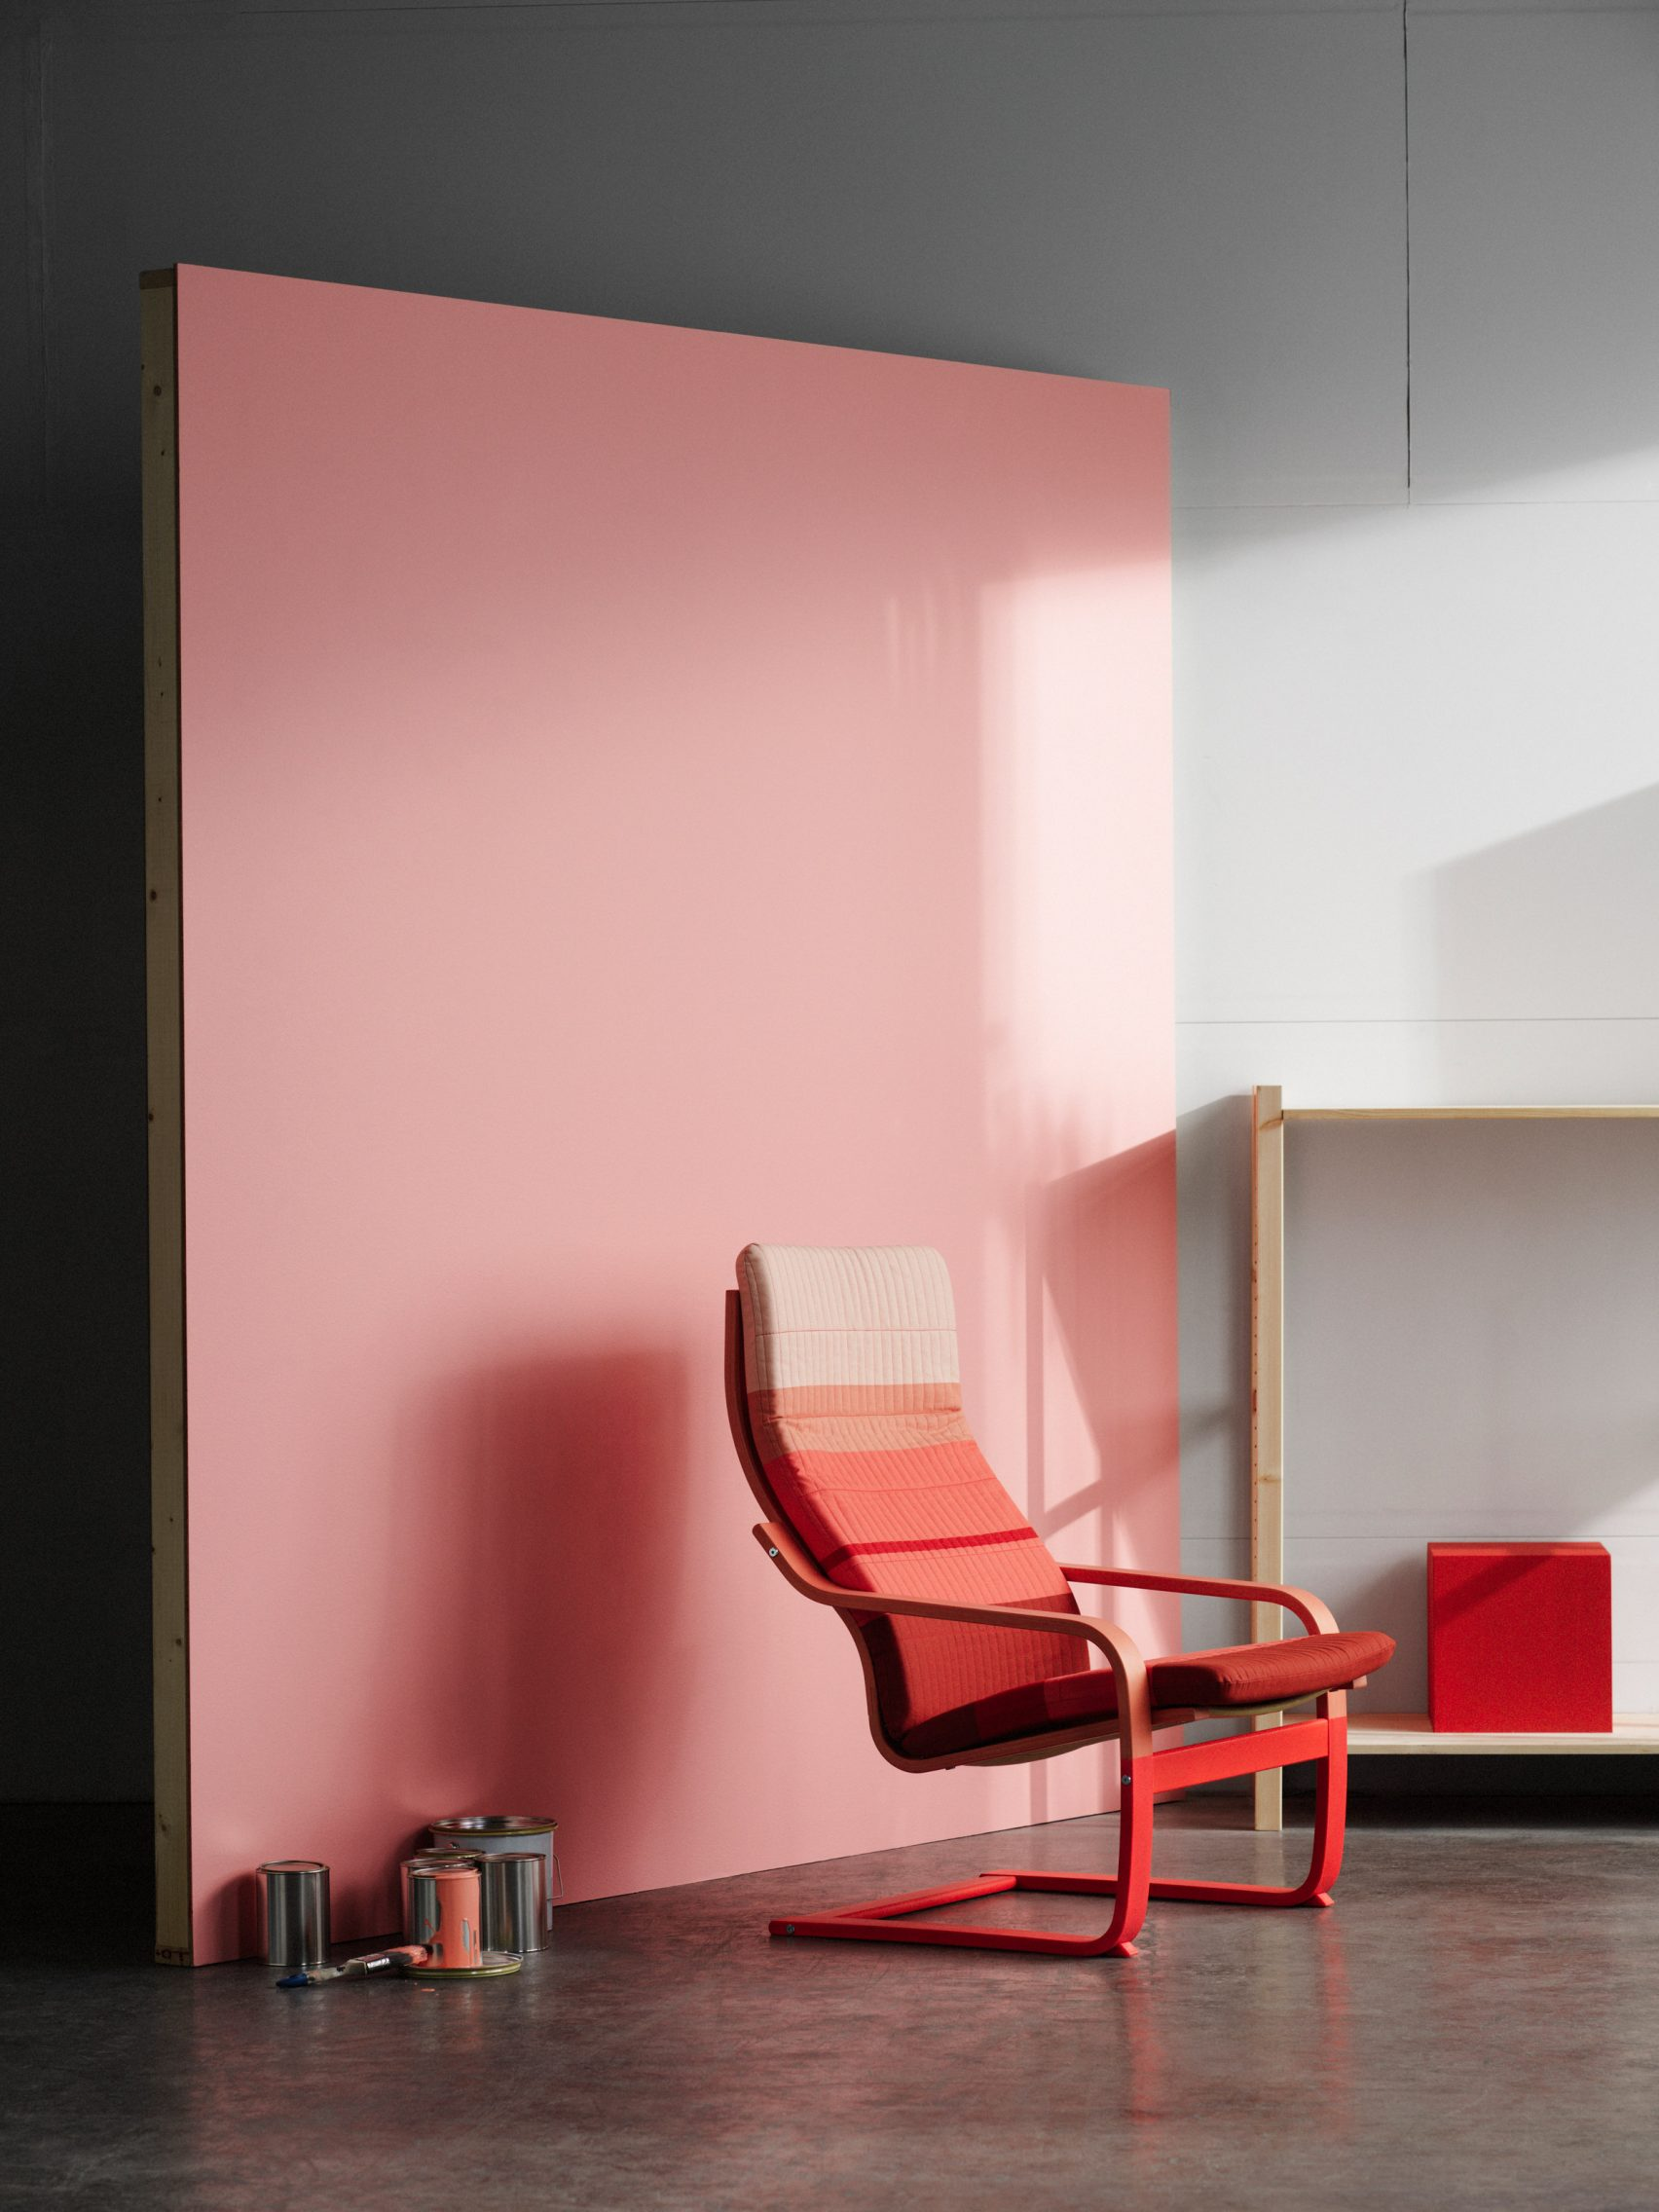 Ikea,IKEA asks Scholten & Baijings to hack two of its most popular furniture designs